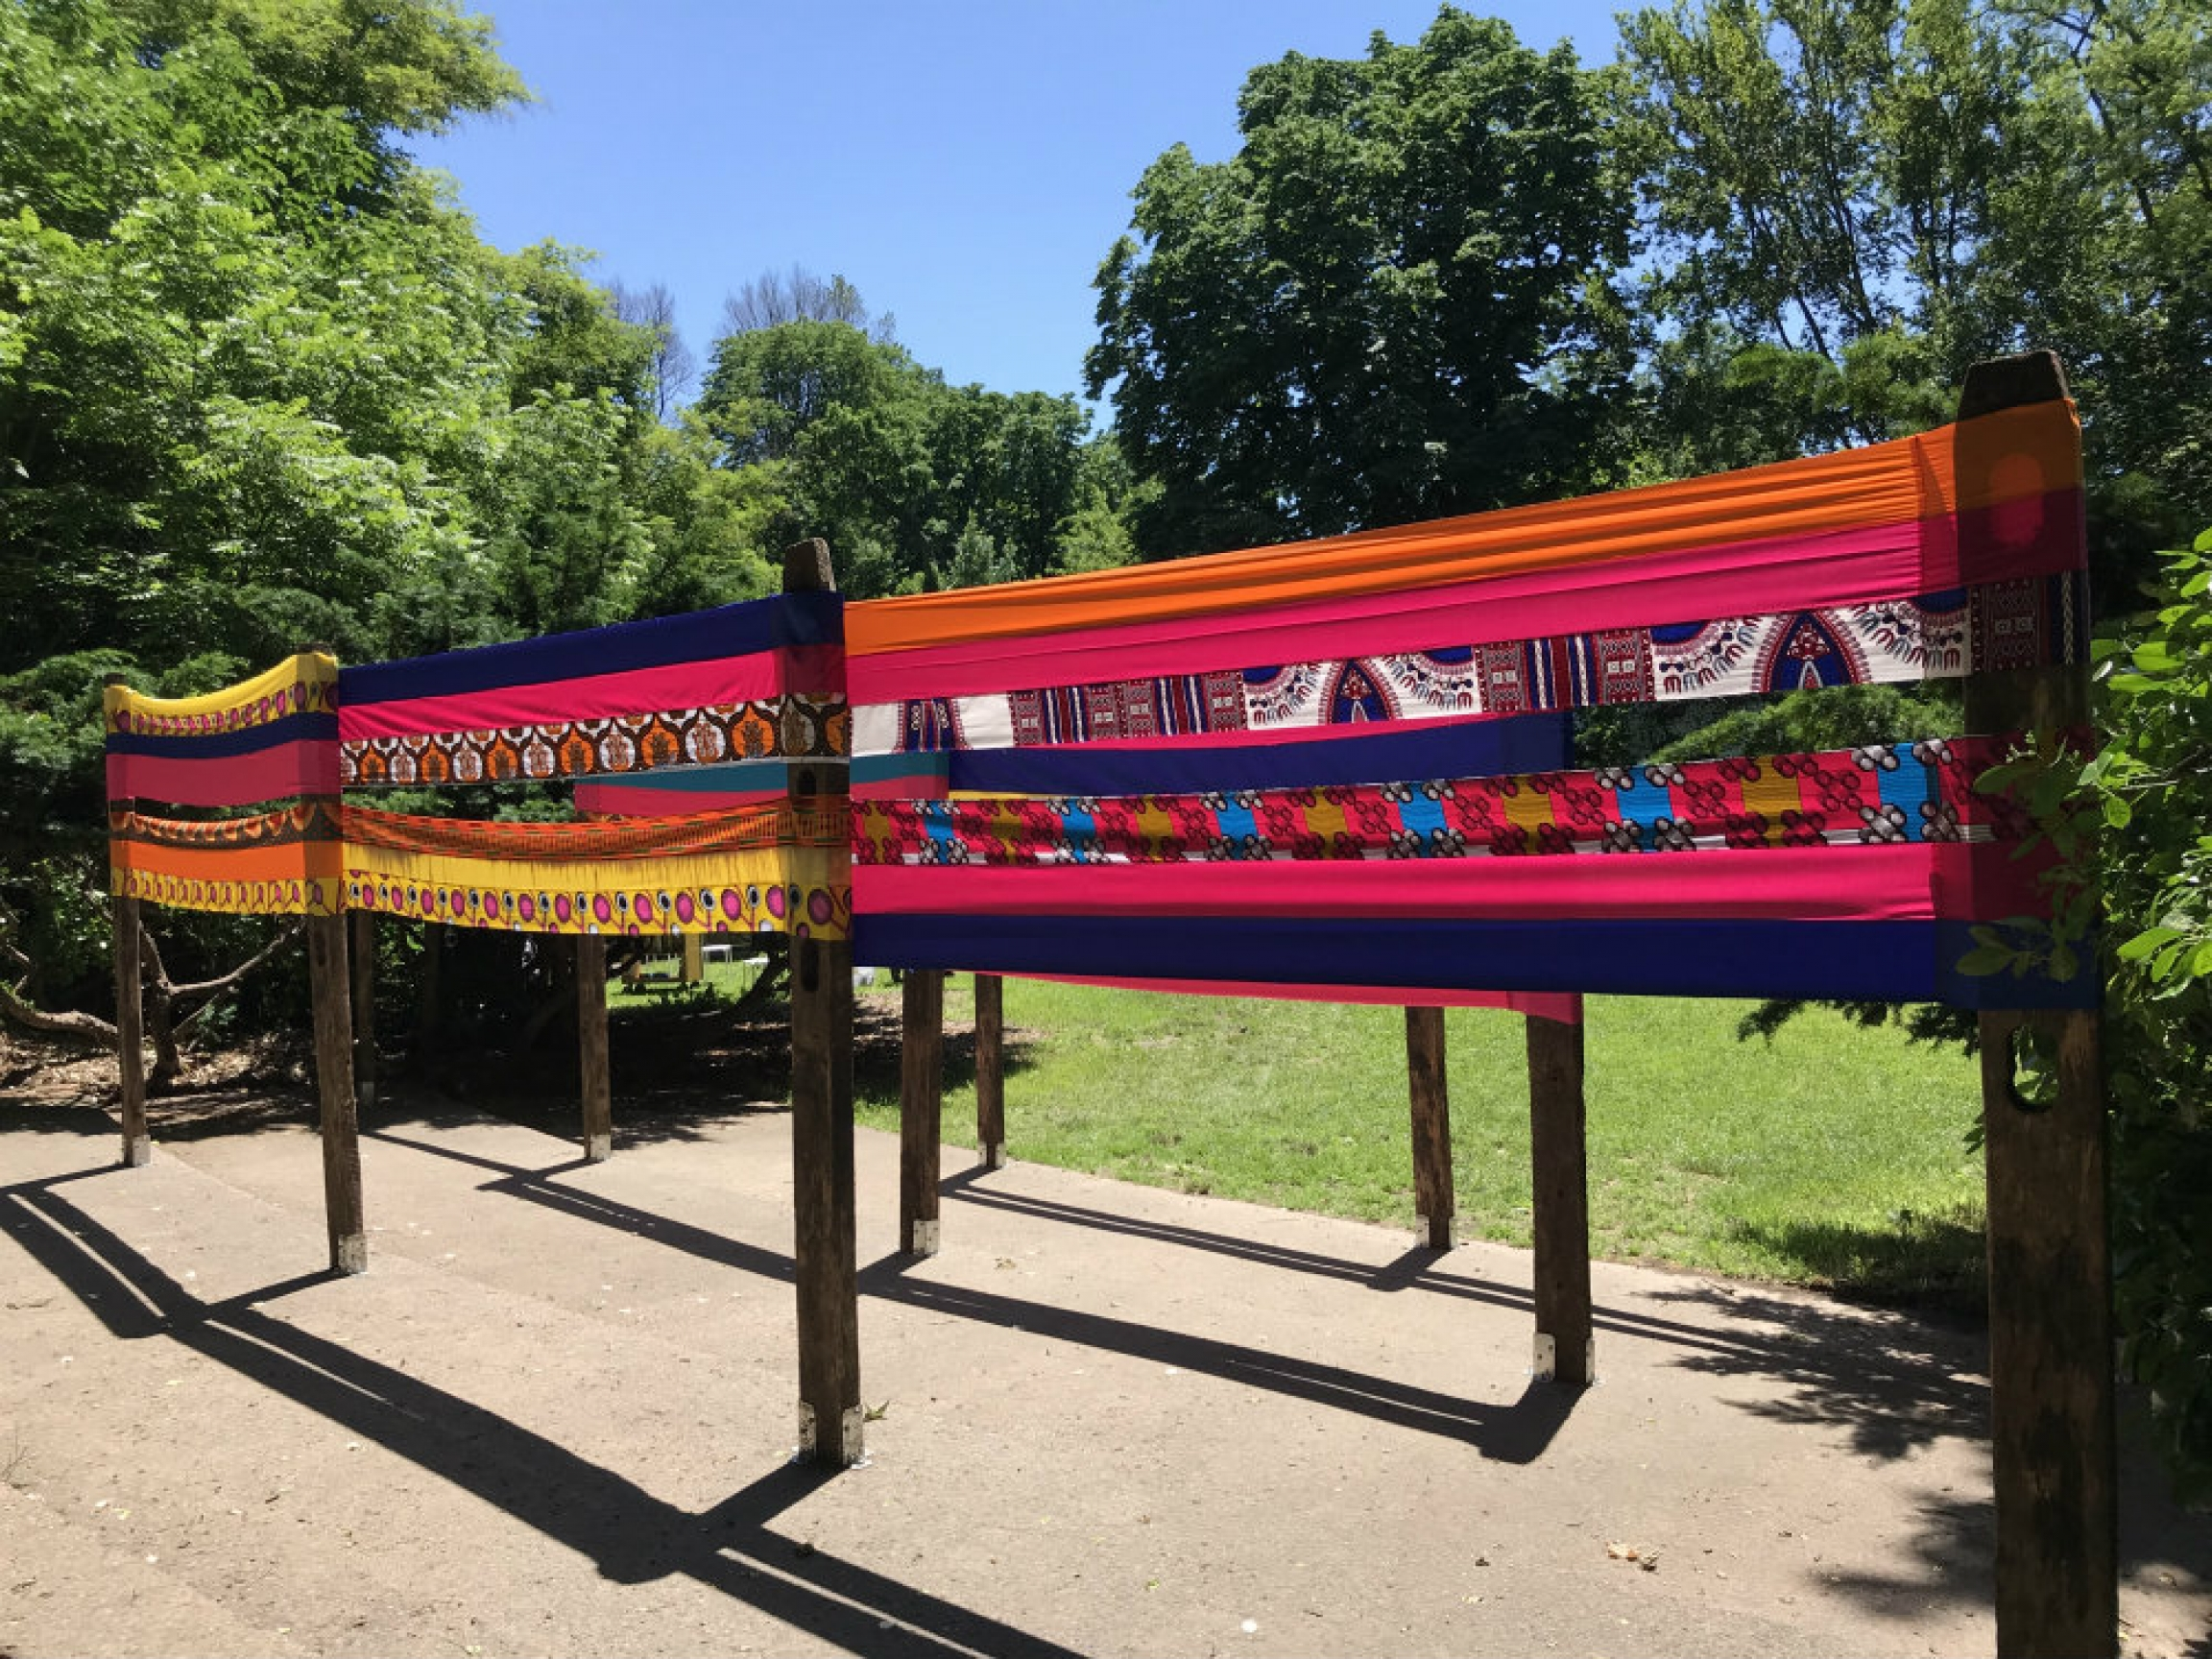 An art installation that includes bright cloth around several posts.